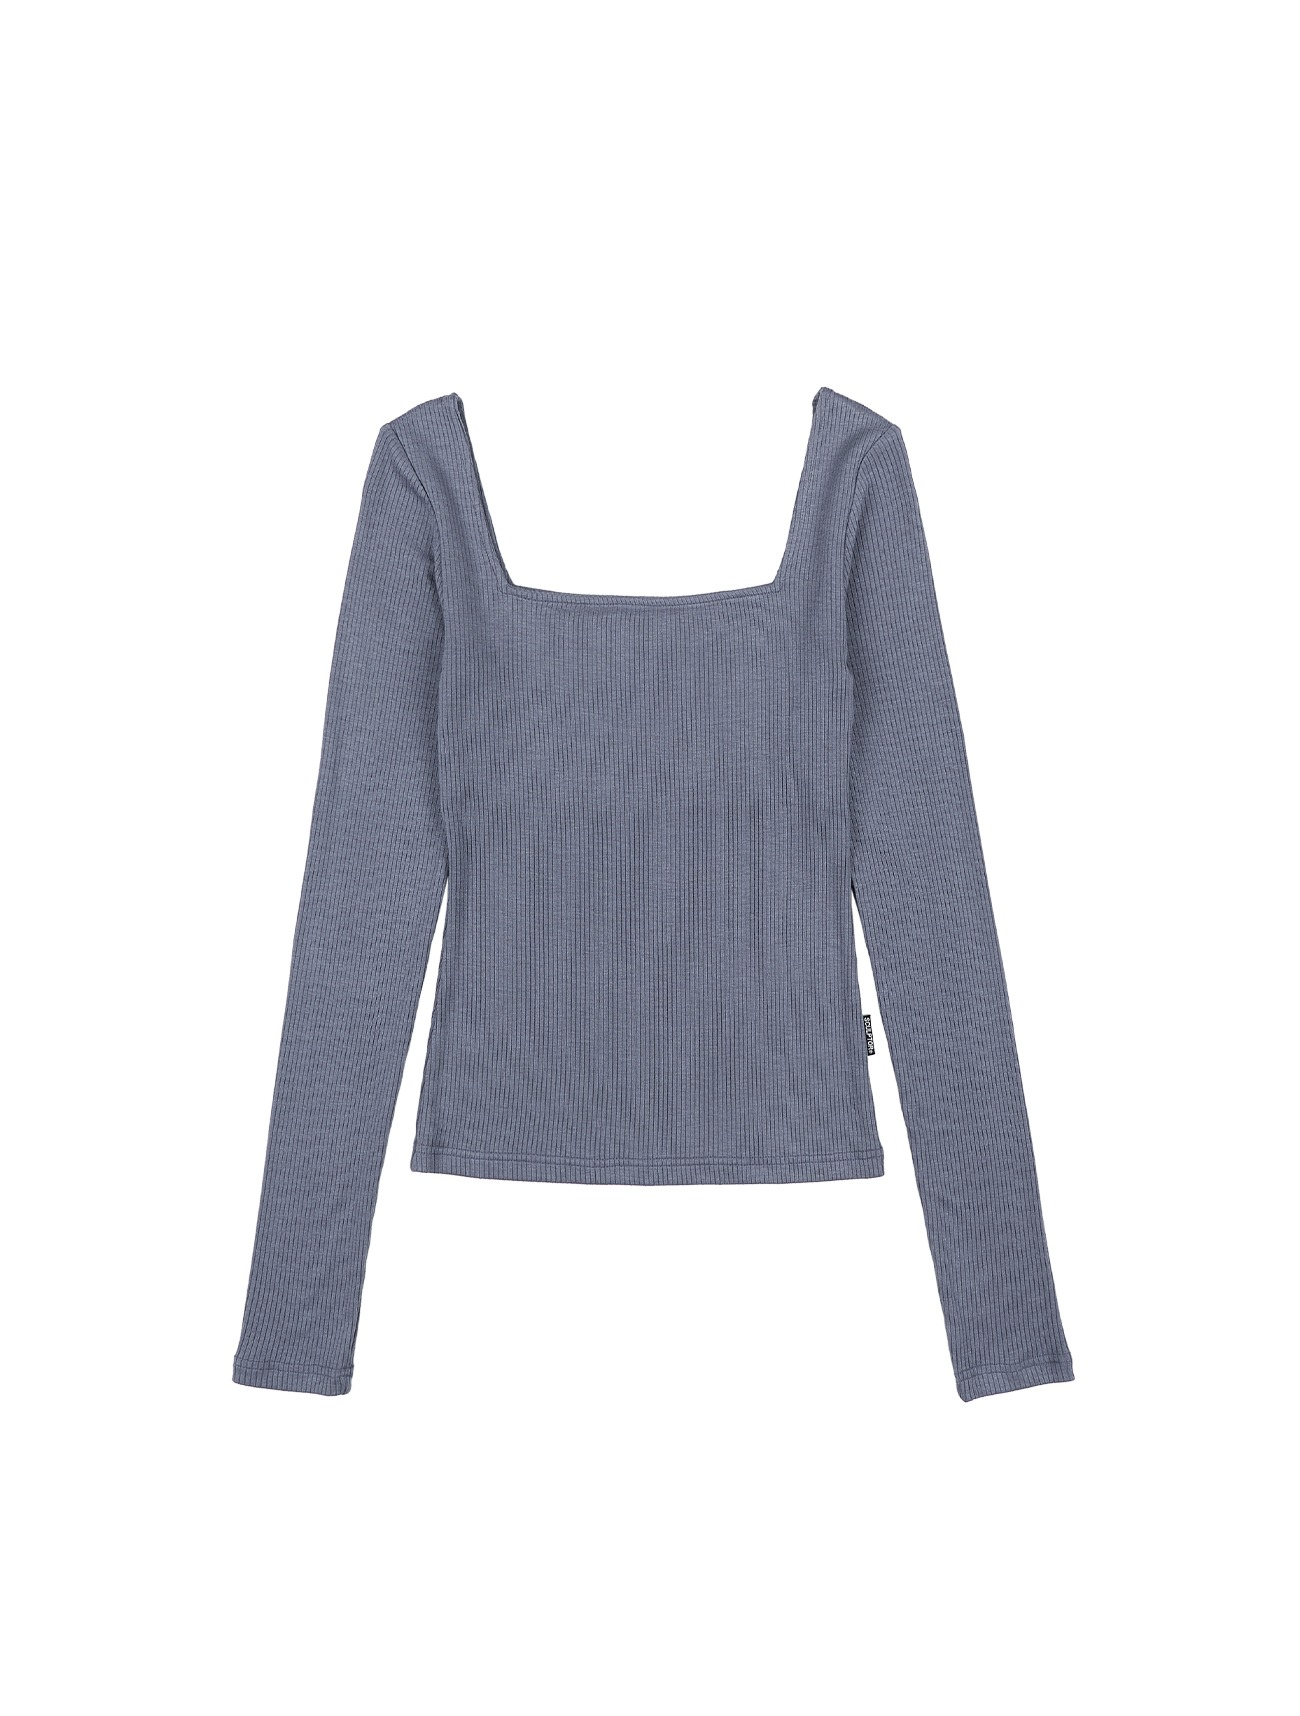 Soft Modal Square Top Dusty Blue